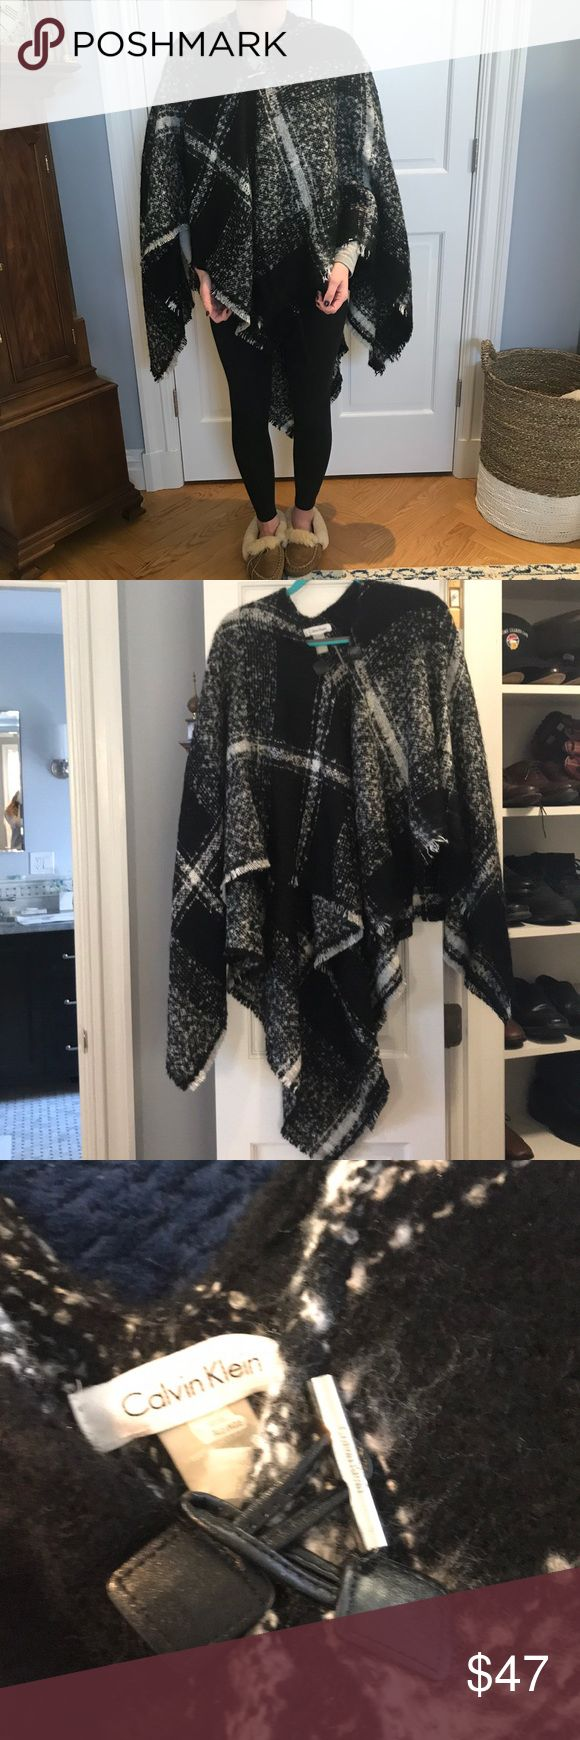 Black and white buffalo plaid cape Calvin Klein white and black buffalo plaid cape; can be worn opened or closed - toggle closure; 100% acrylic but feels like cashmere ; brand new with tags; very comfortable but also warm! Calvin Klein Sweaters Shrugs & Ponchos